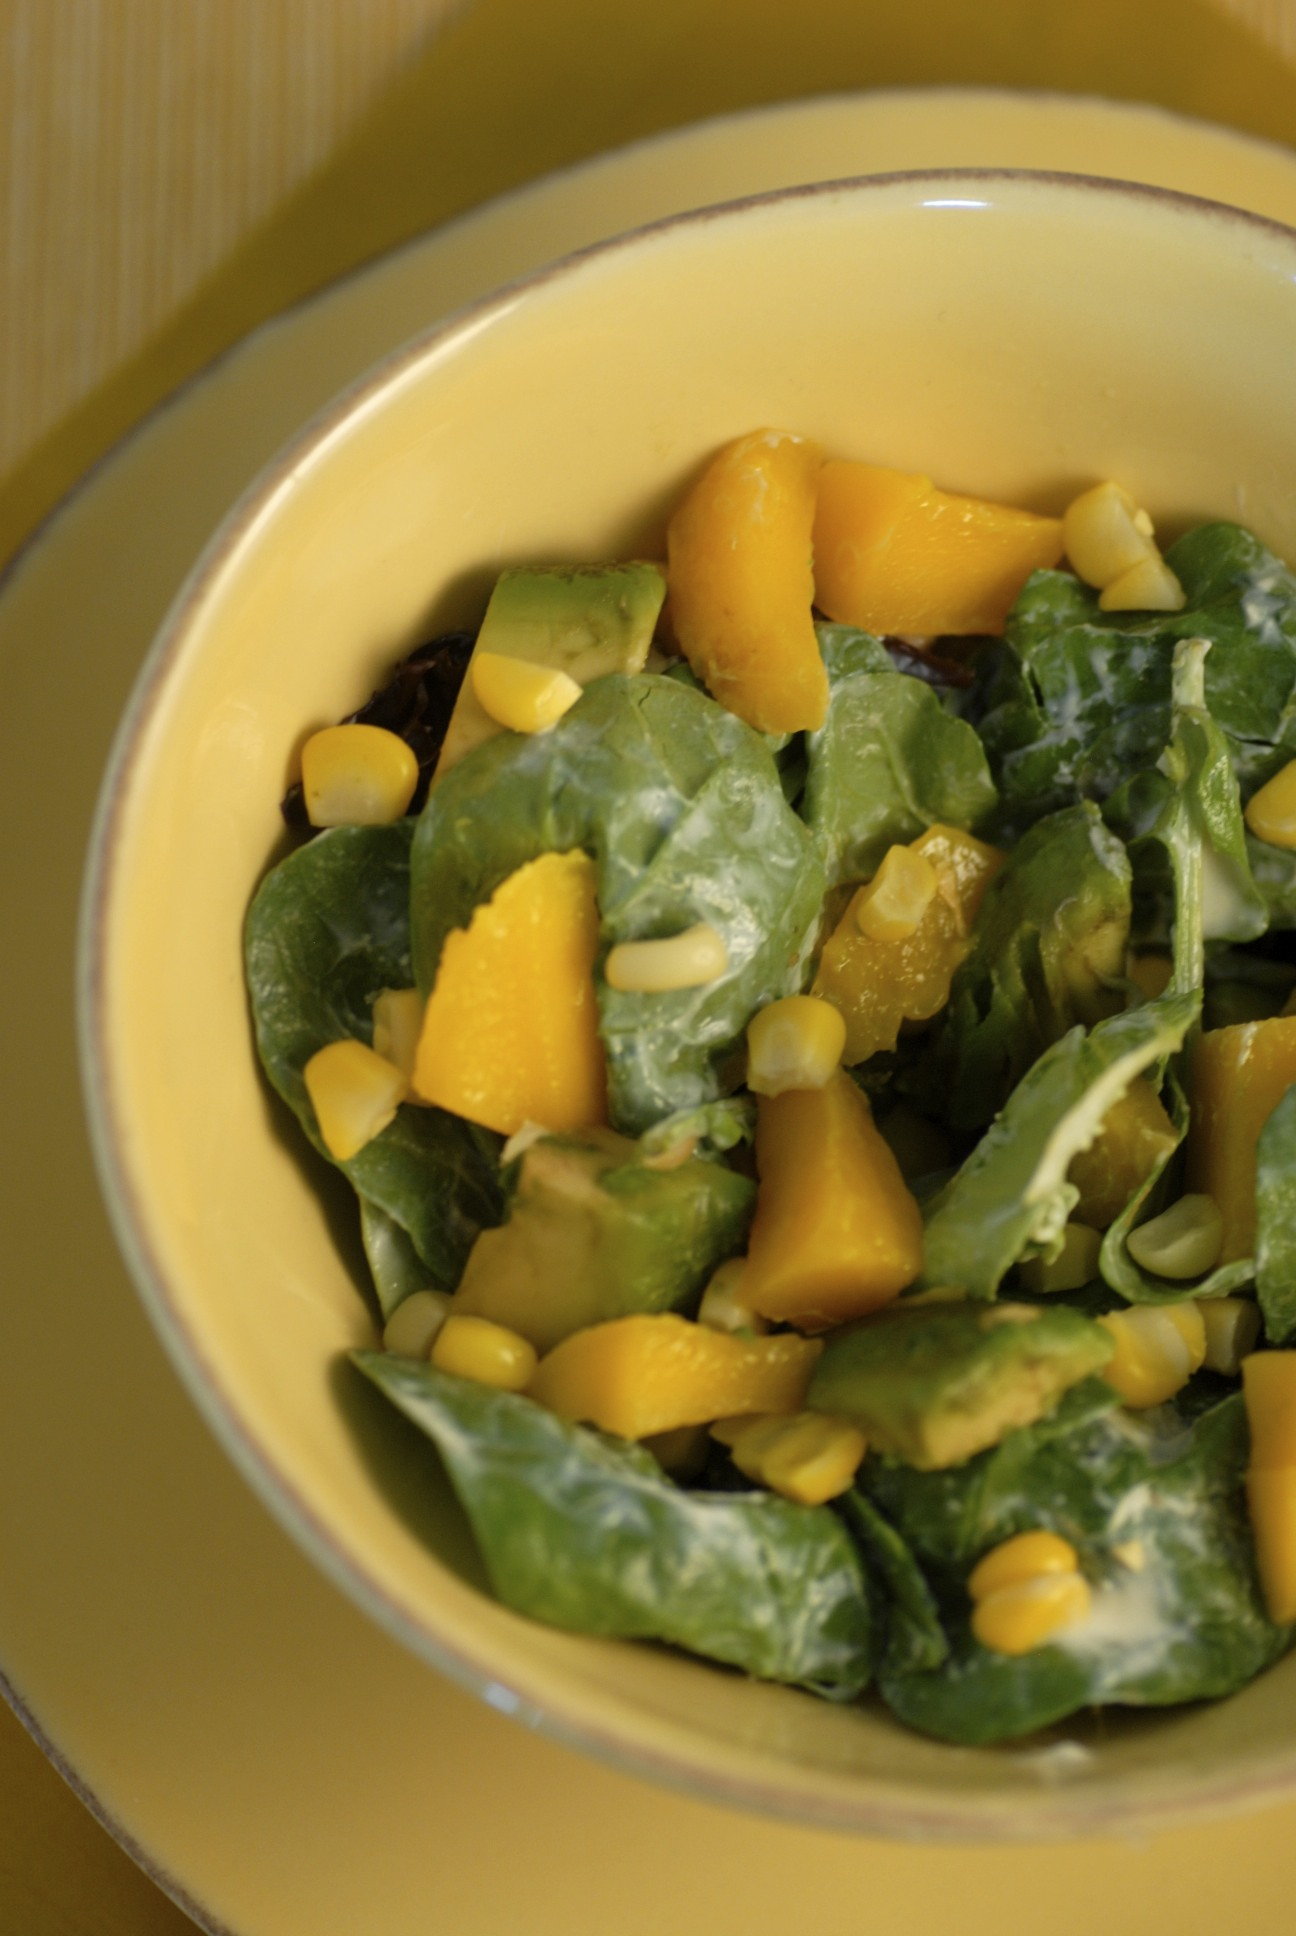 salad with avocado, roasted corn, mango, and creamy ginger dressing